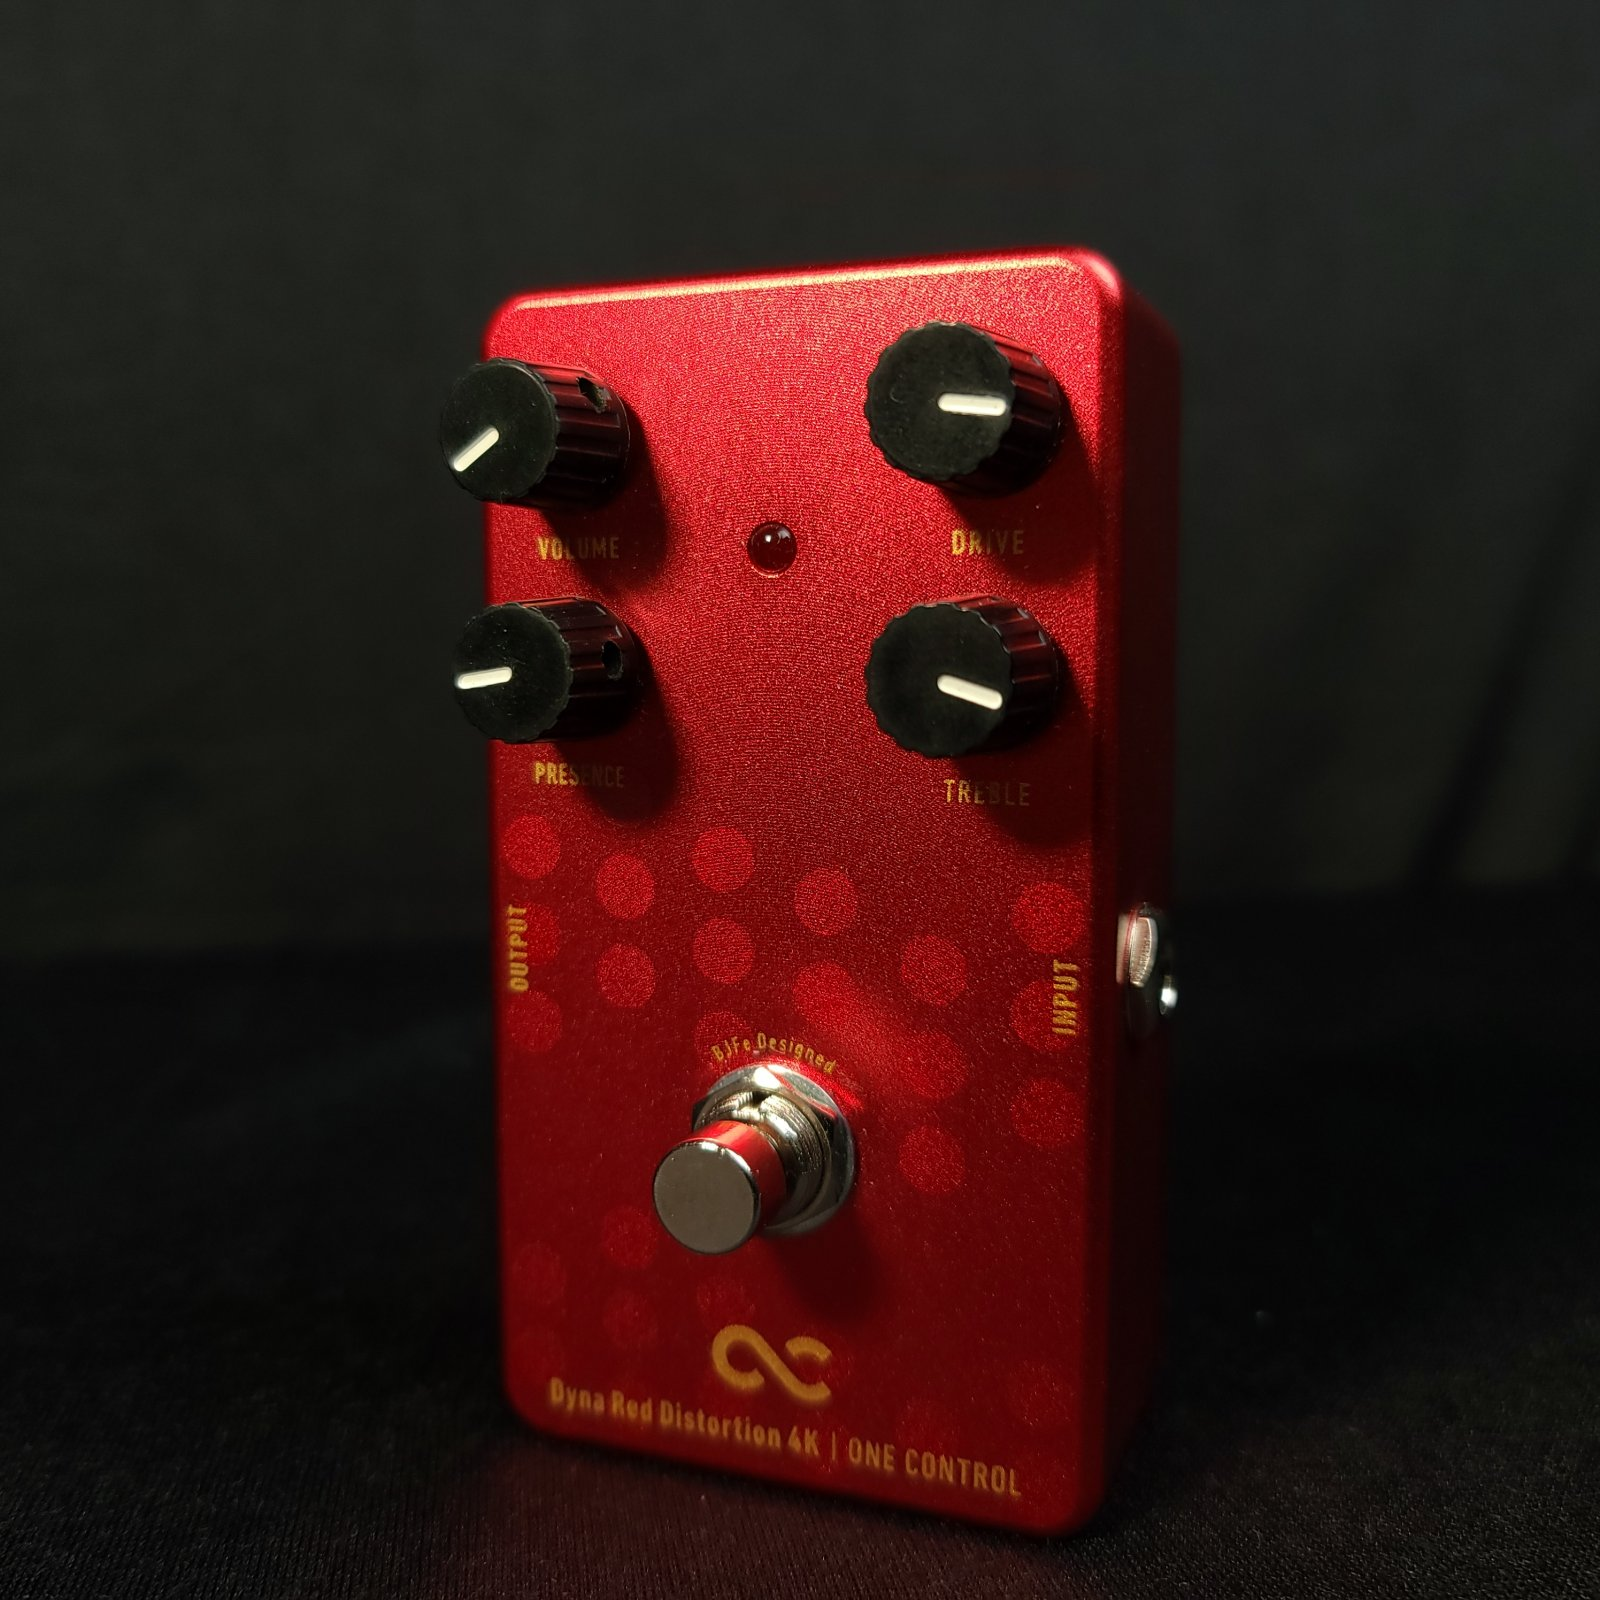 Used One Control Dyna Red Distortion 4k Pedal w/Box